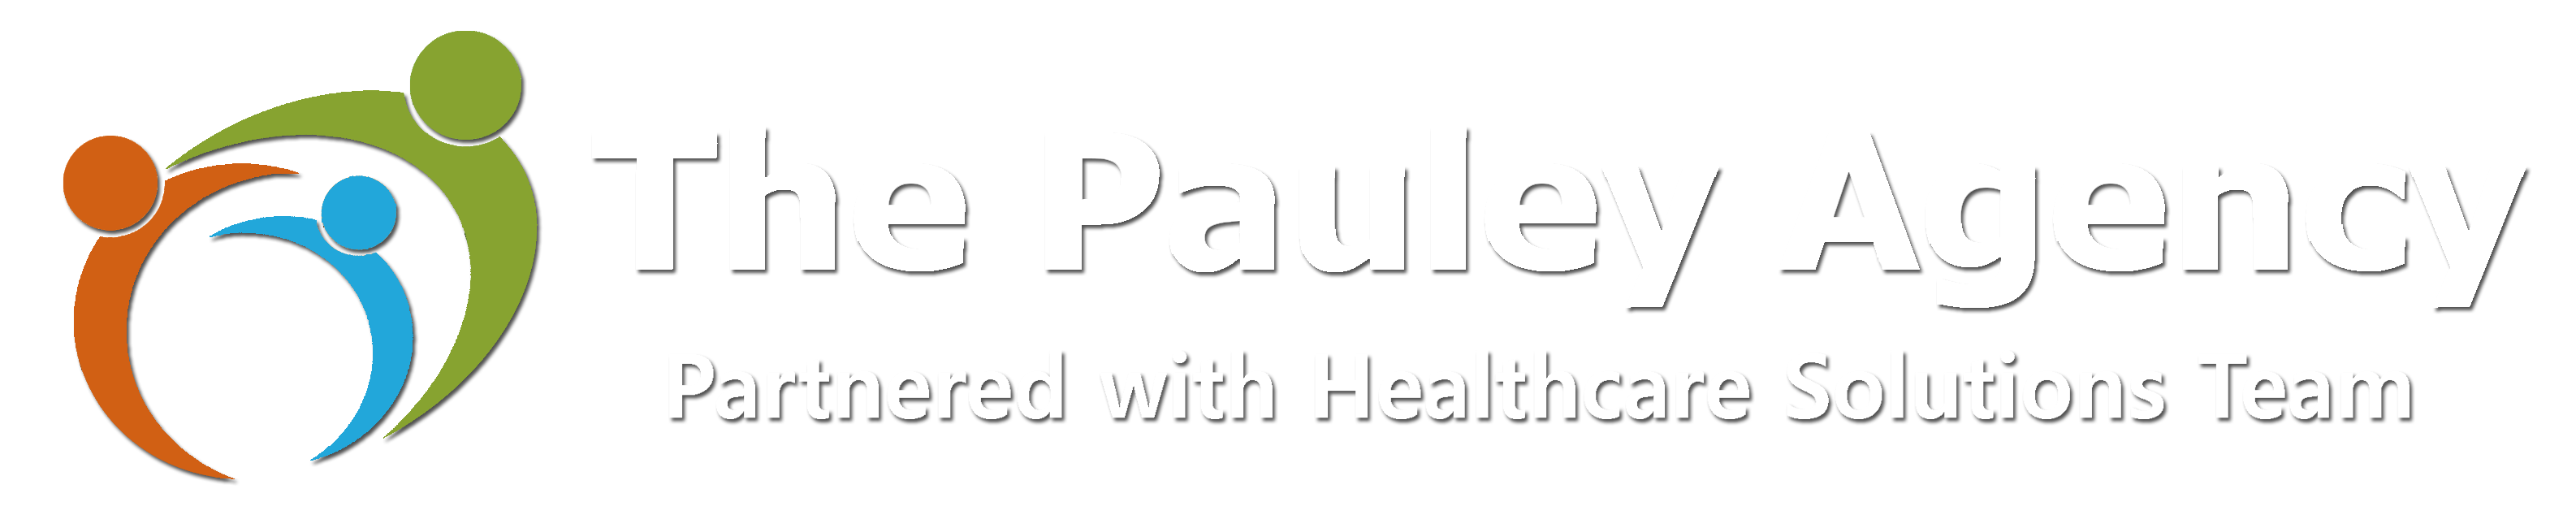 the Pauley Agency